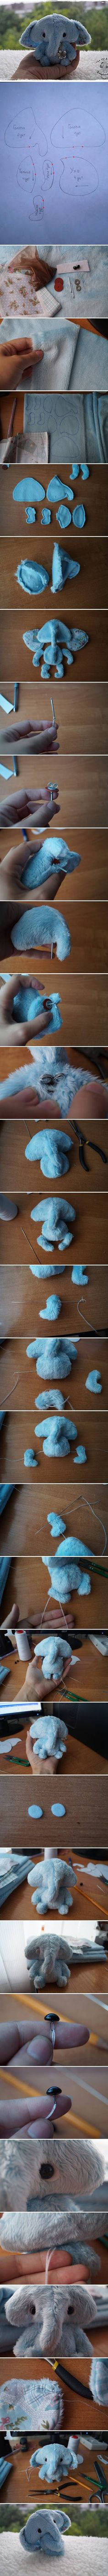 DIY Fabric Little Elephant.  Sooooo cute!